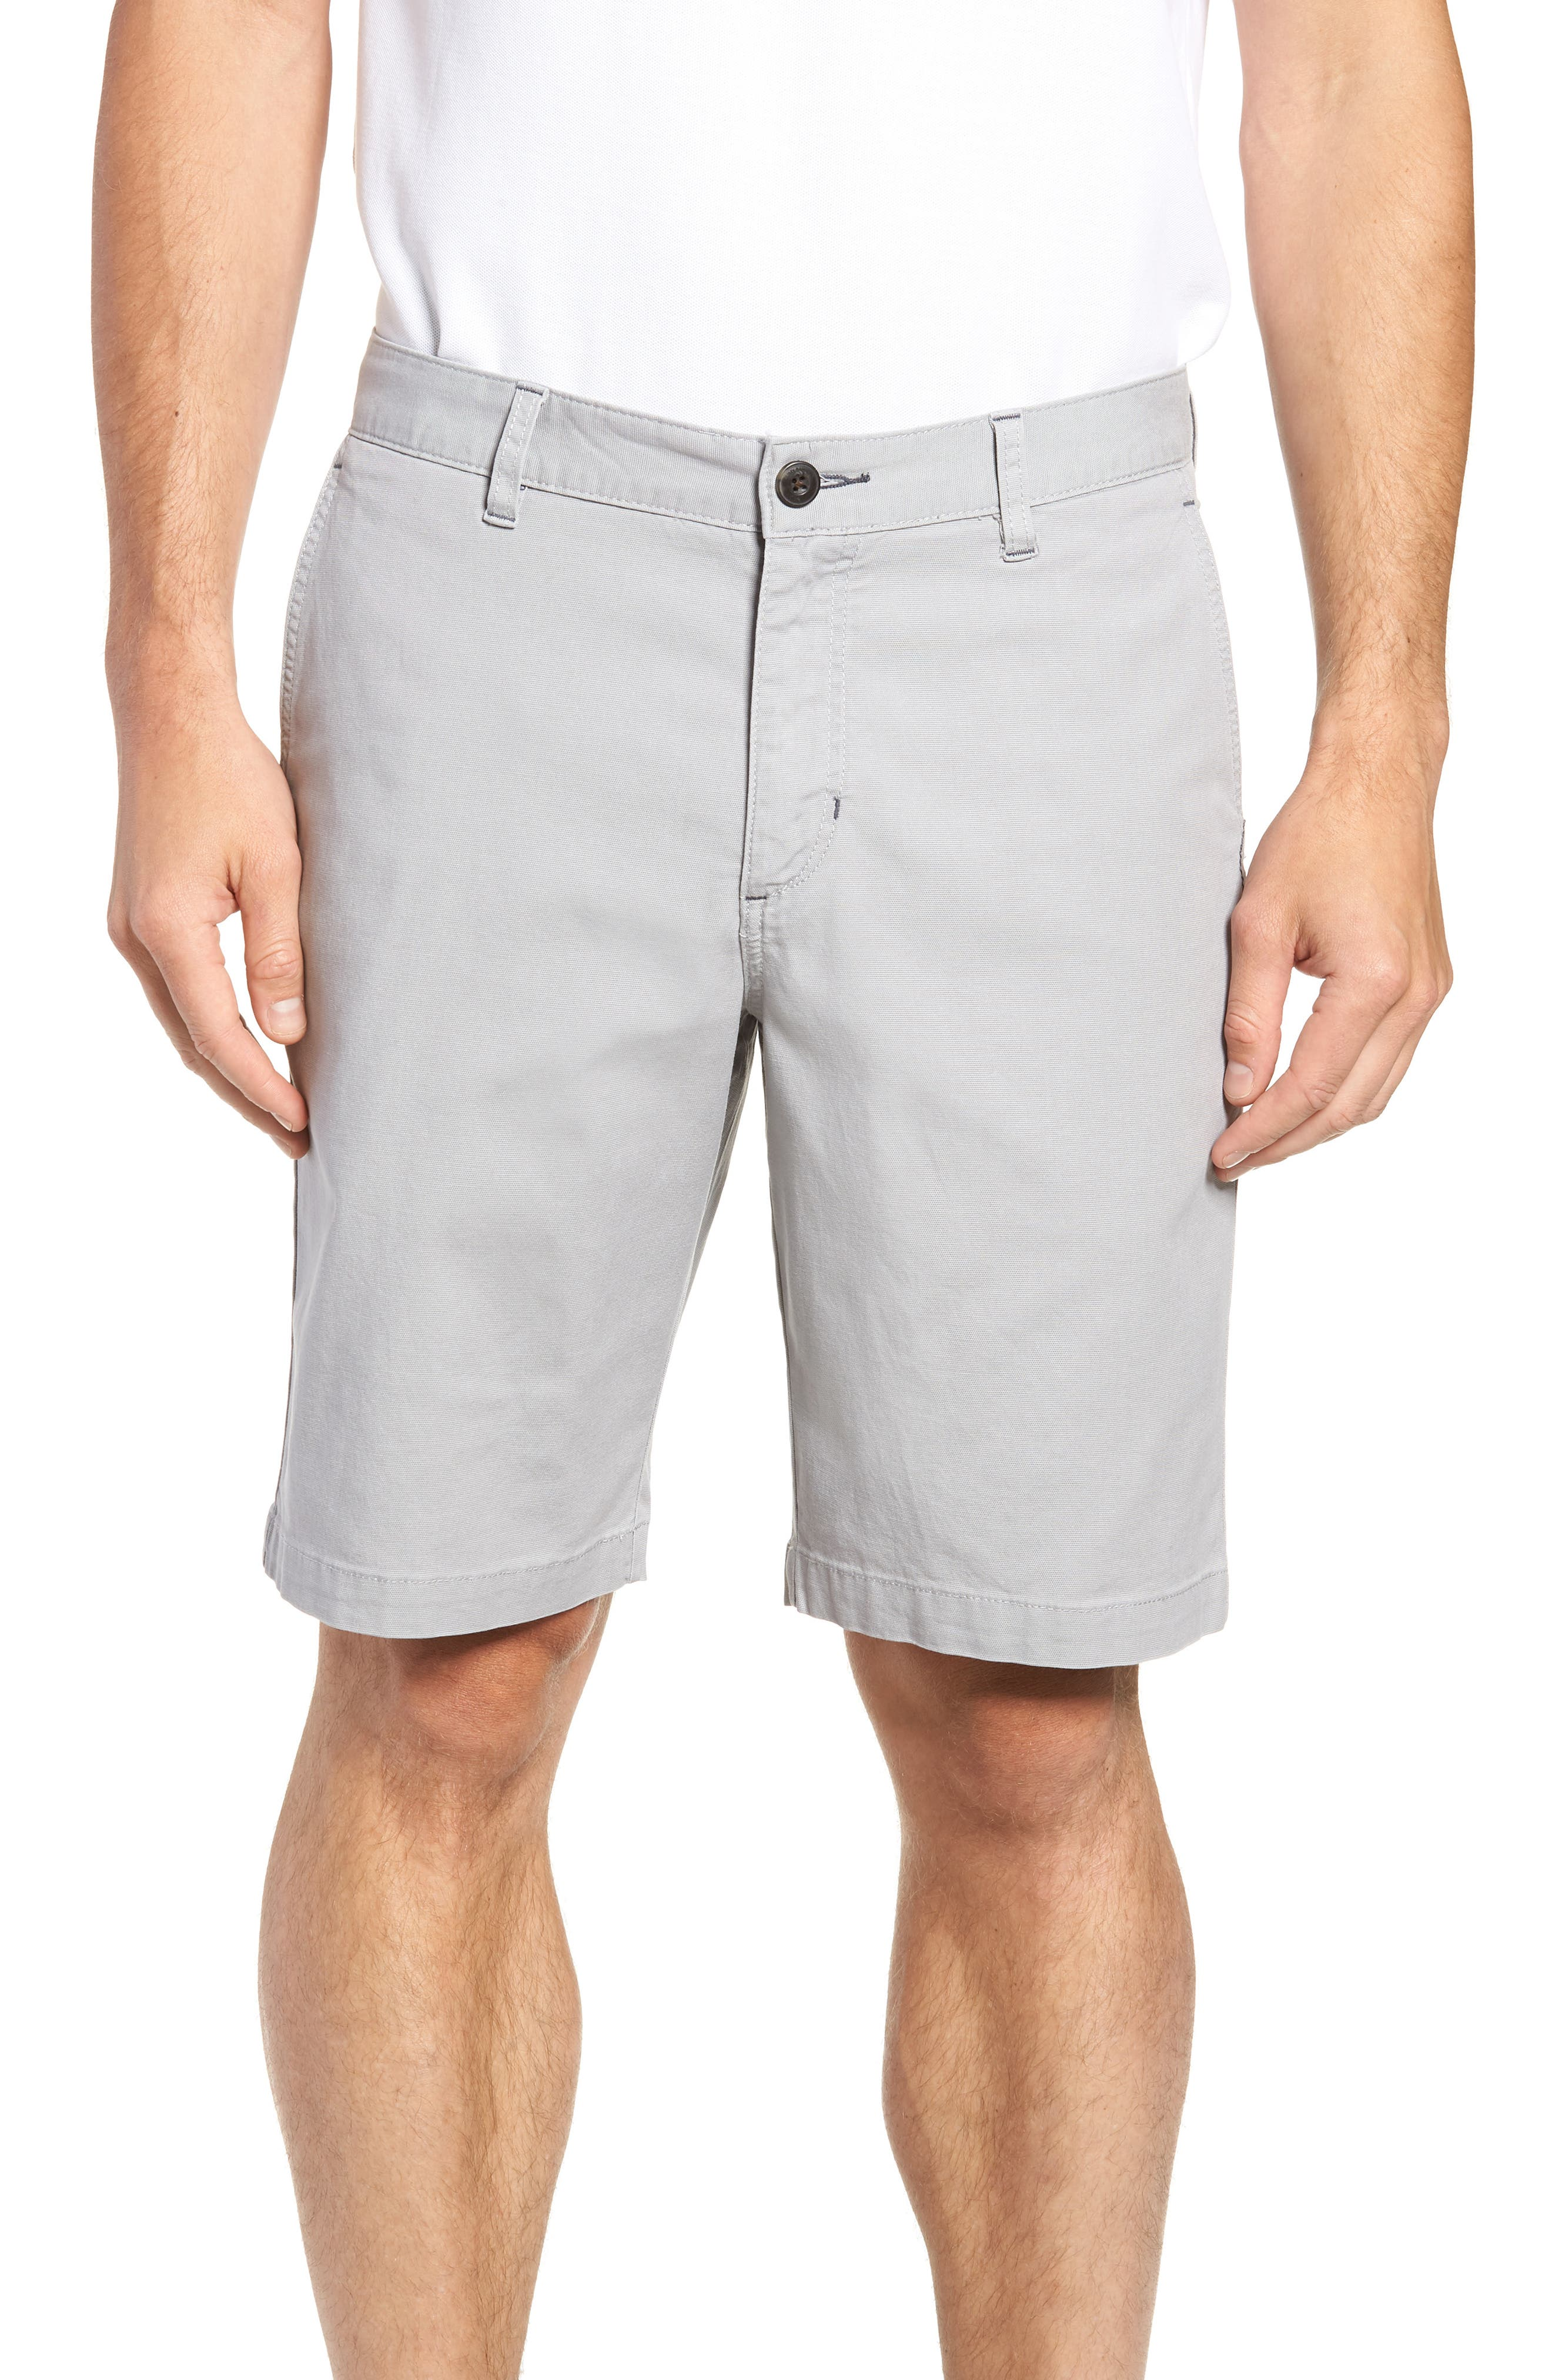 Key Isles Shorts,                         Main,                         color, ARGENT